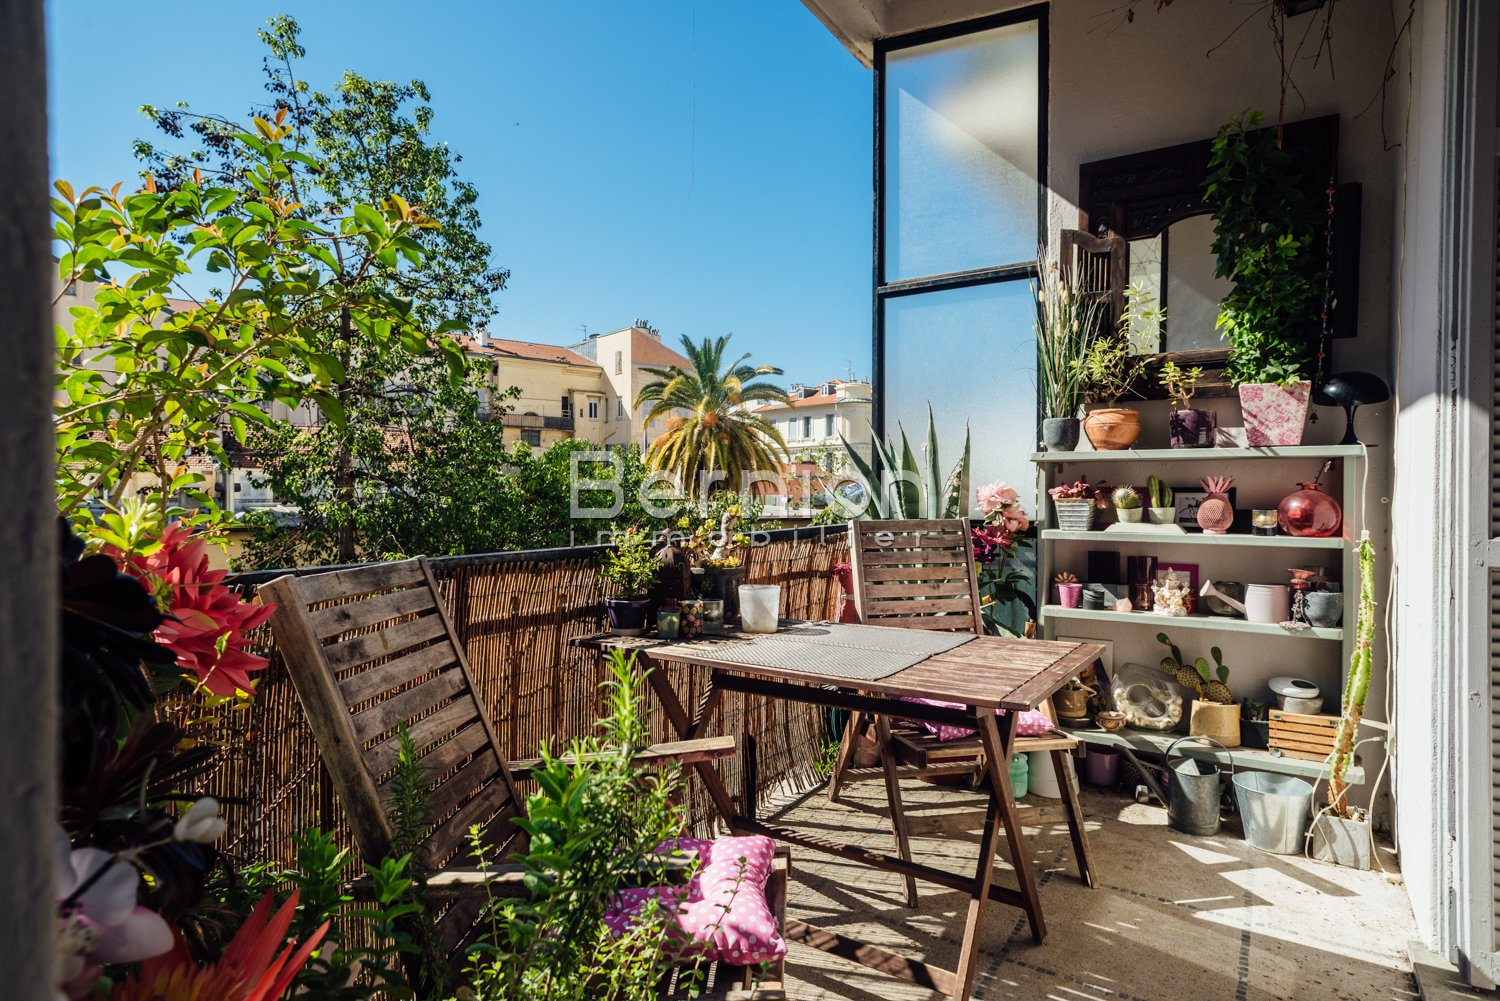 For Sale, Nice City Center Beautiful 72 sqm Apartment with terrace in Art Deco Building / photo 2